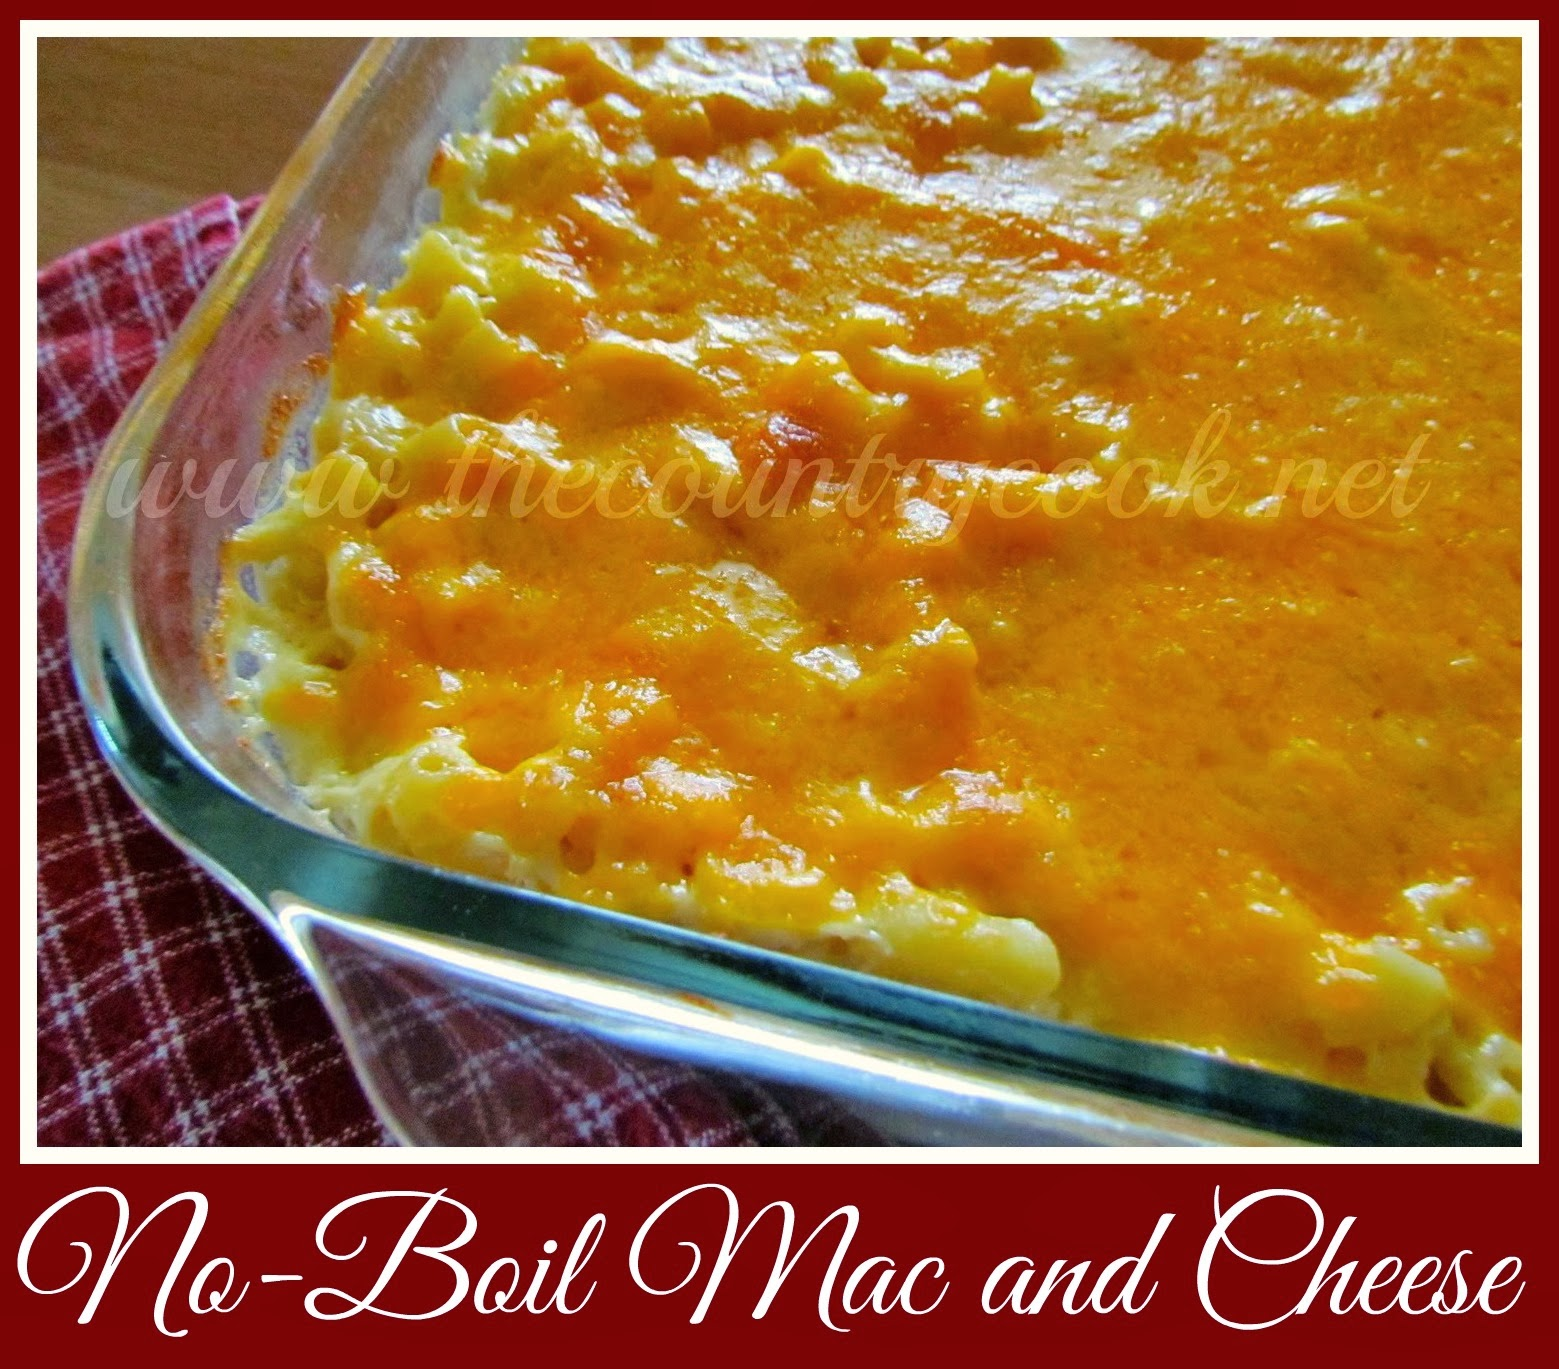 Homemade No-Boil Mac and Cheese